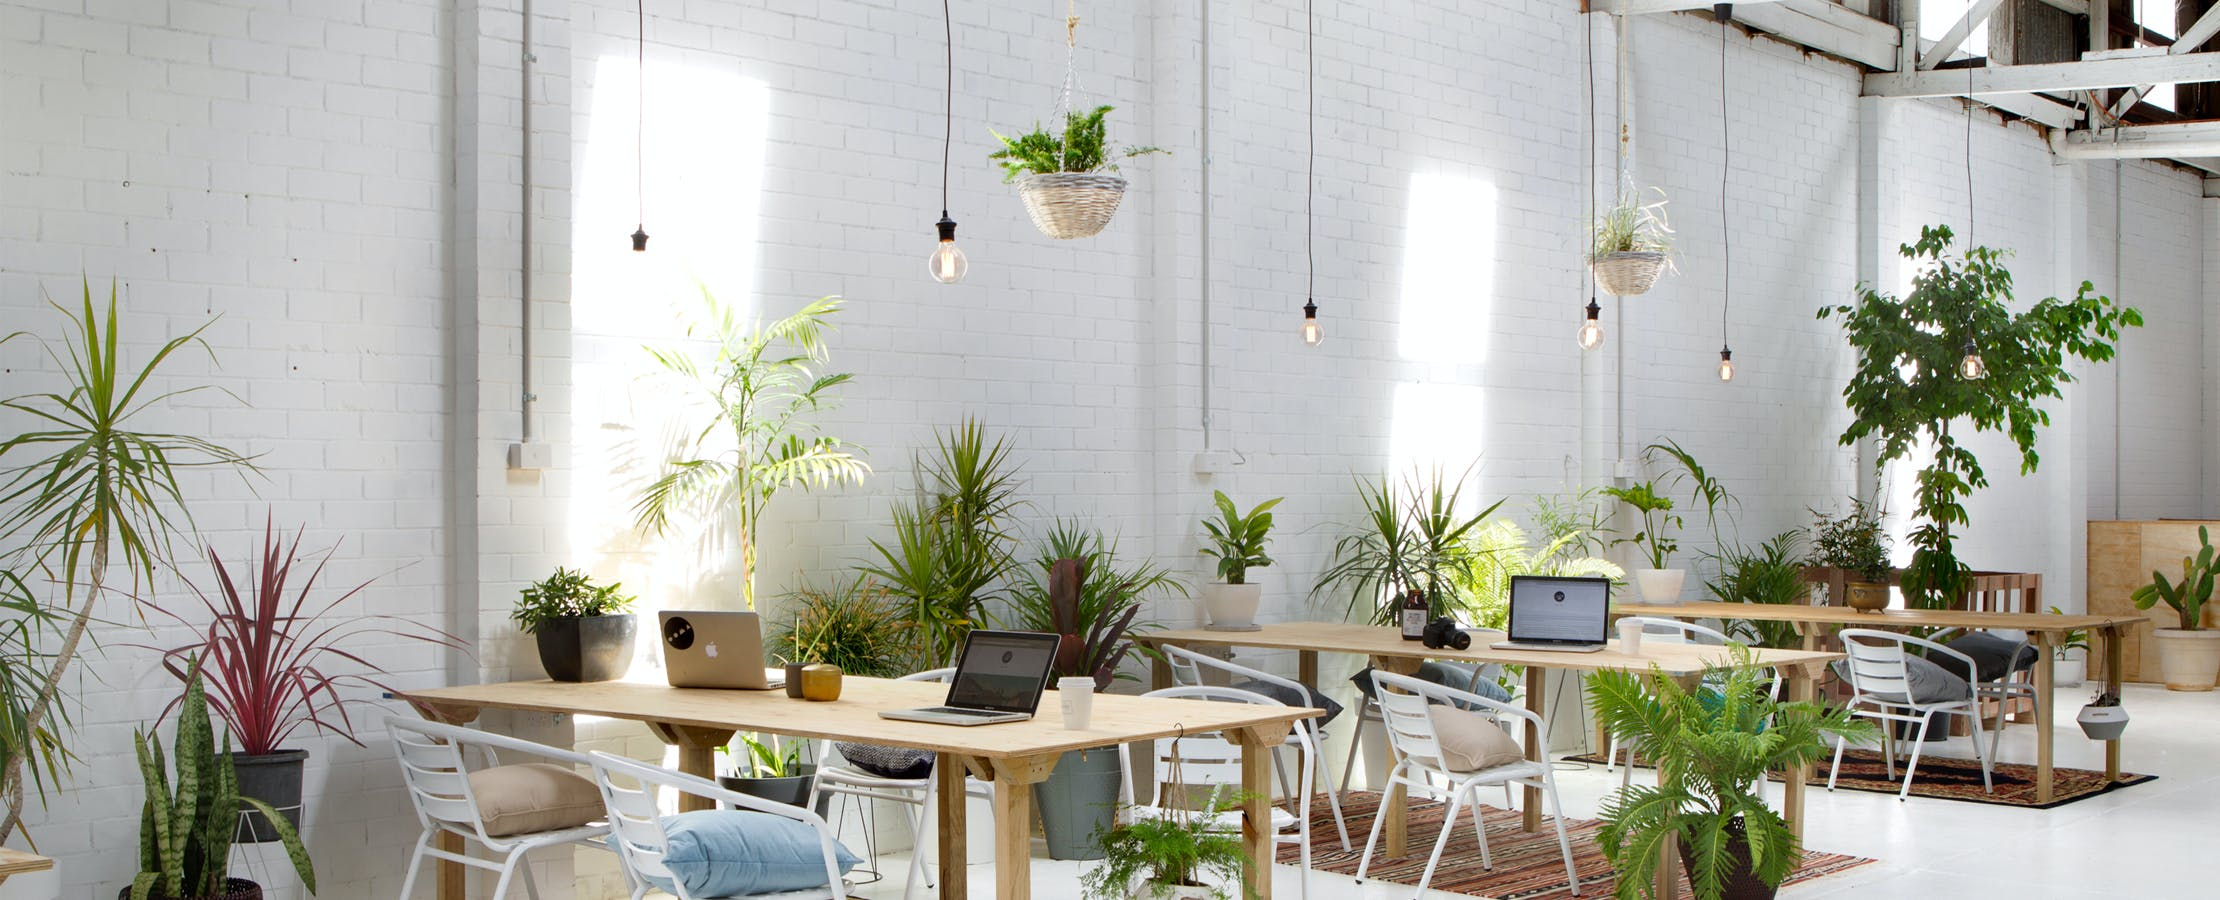 Coworking at Cleaver Street & Co. Studio, image 1